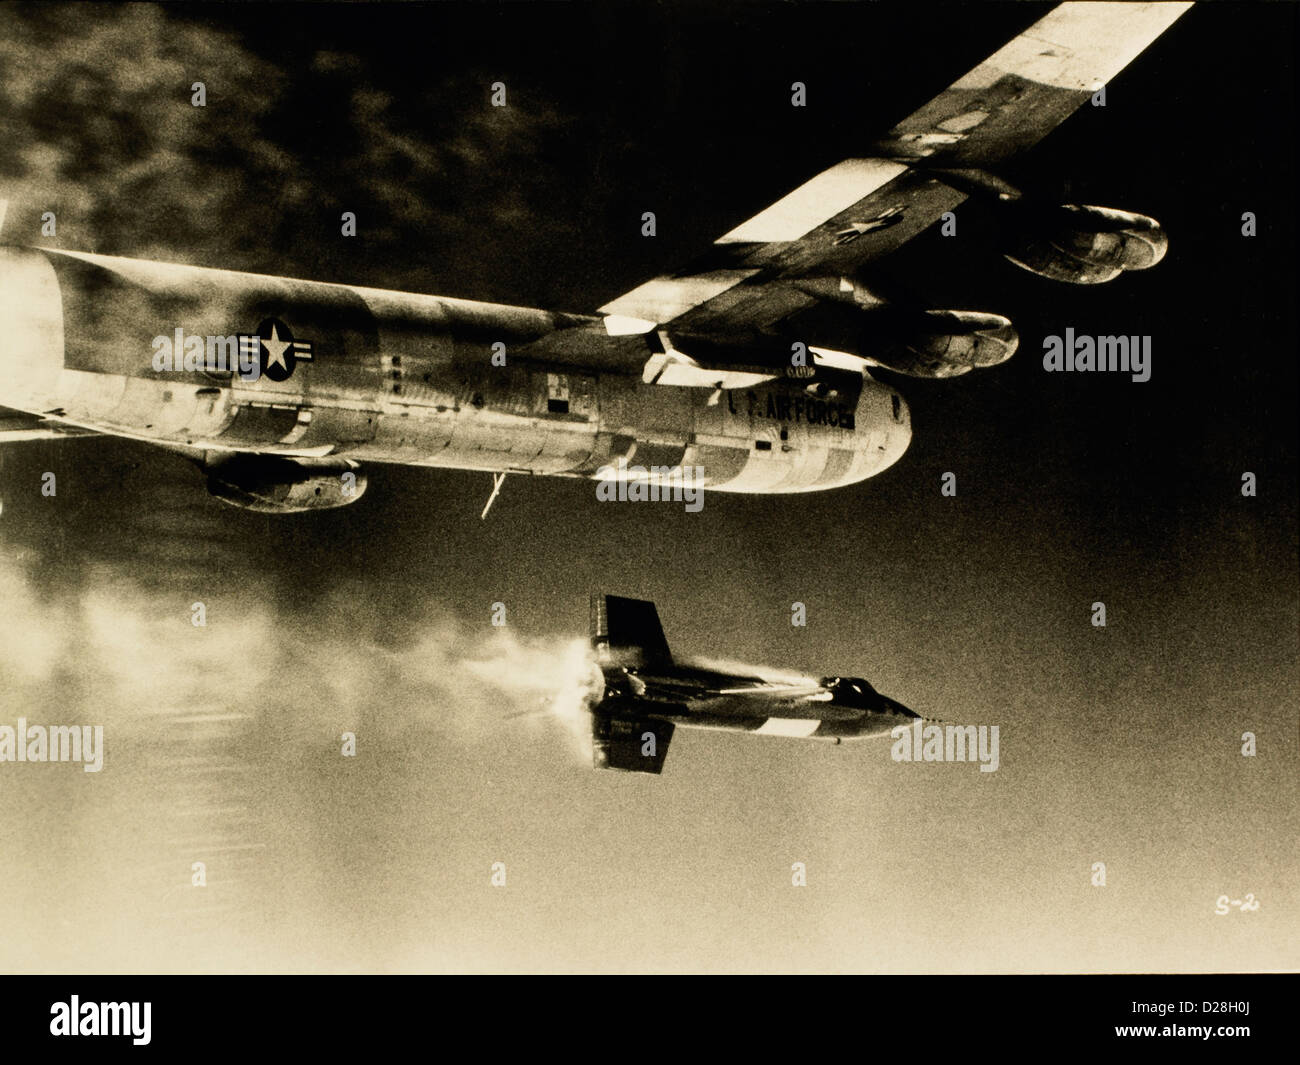 X-1 Supersonic Rocket Ship Launched from Converted  B-52 Bomber, Circa 1950 - Stock Image